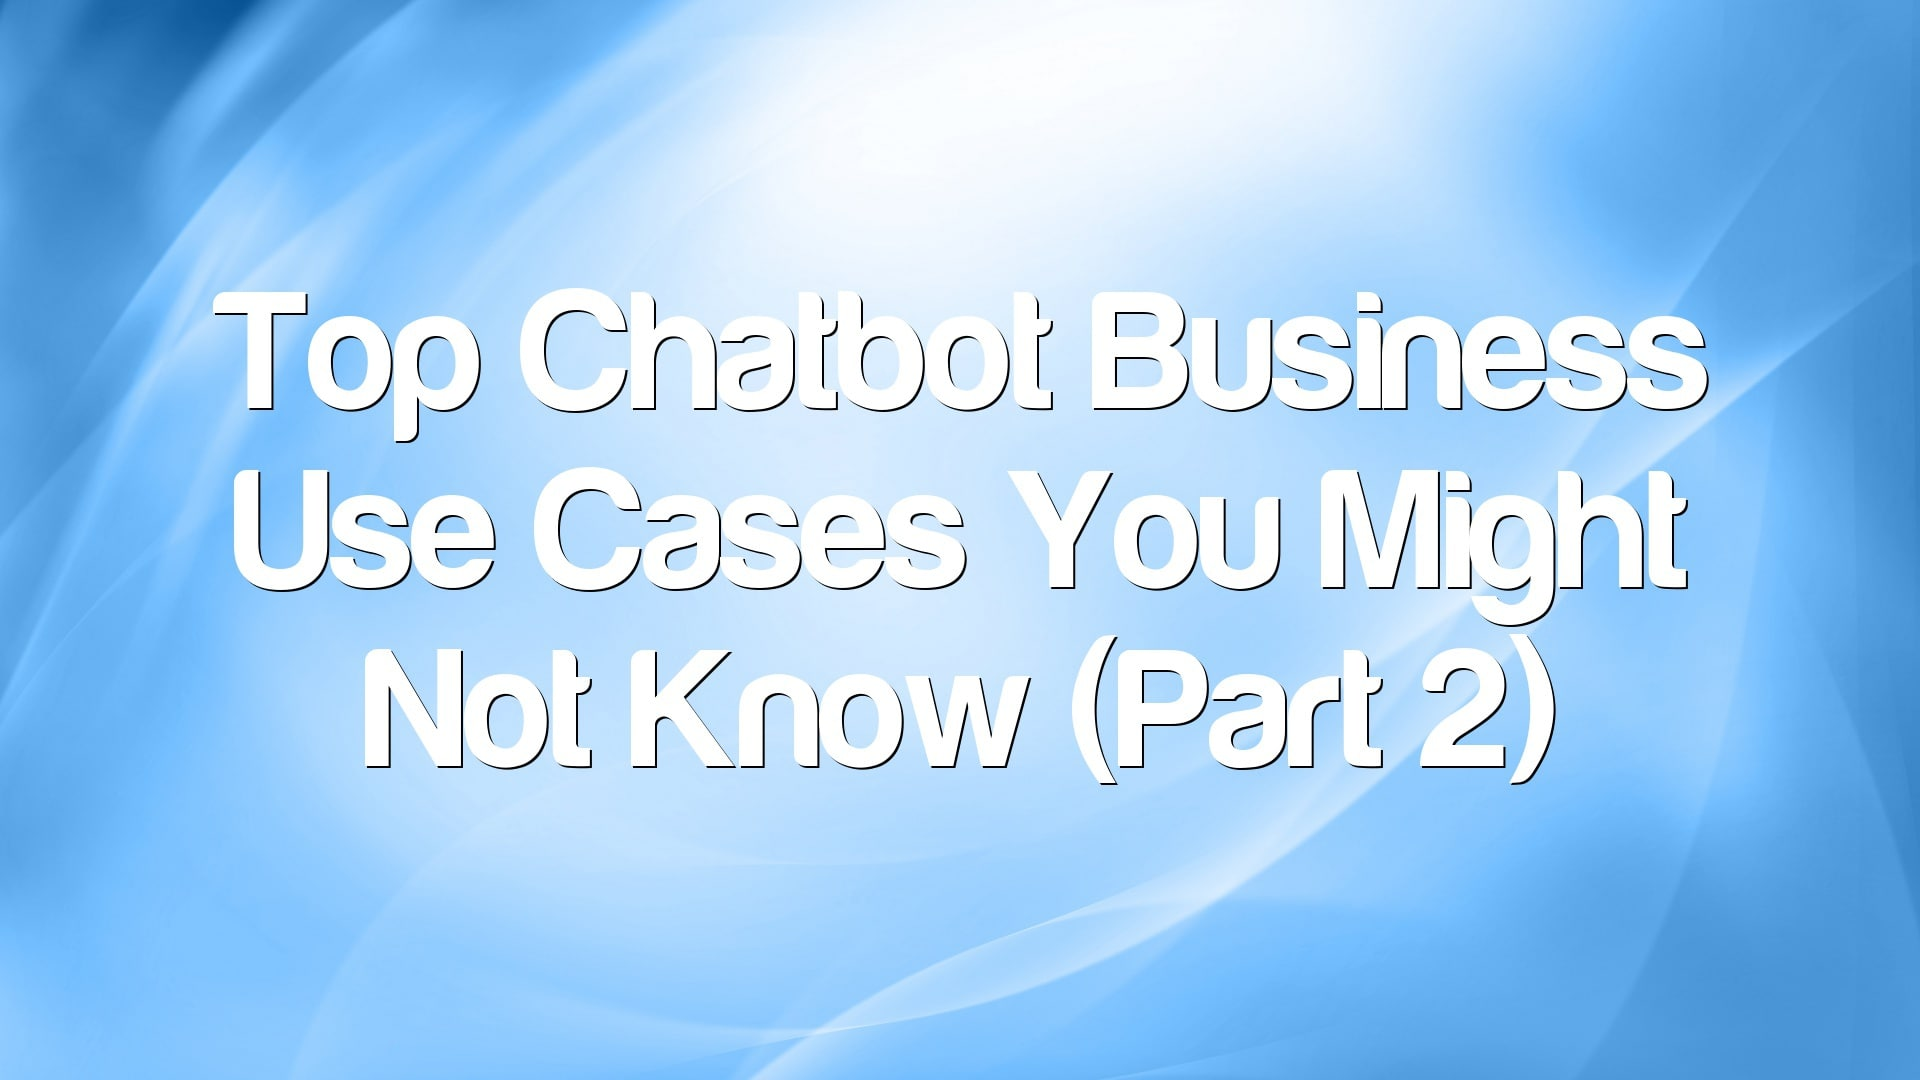 Top Chatbot Business Use Cases You Might Not Know (Part 2)